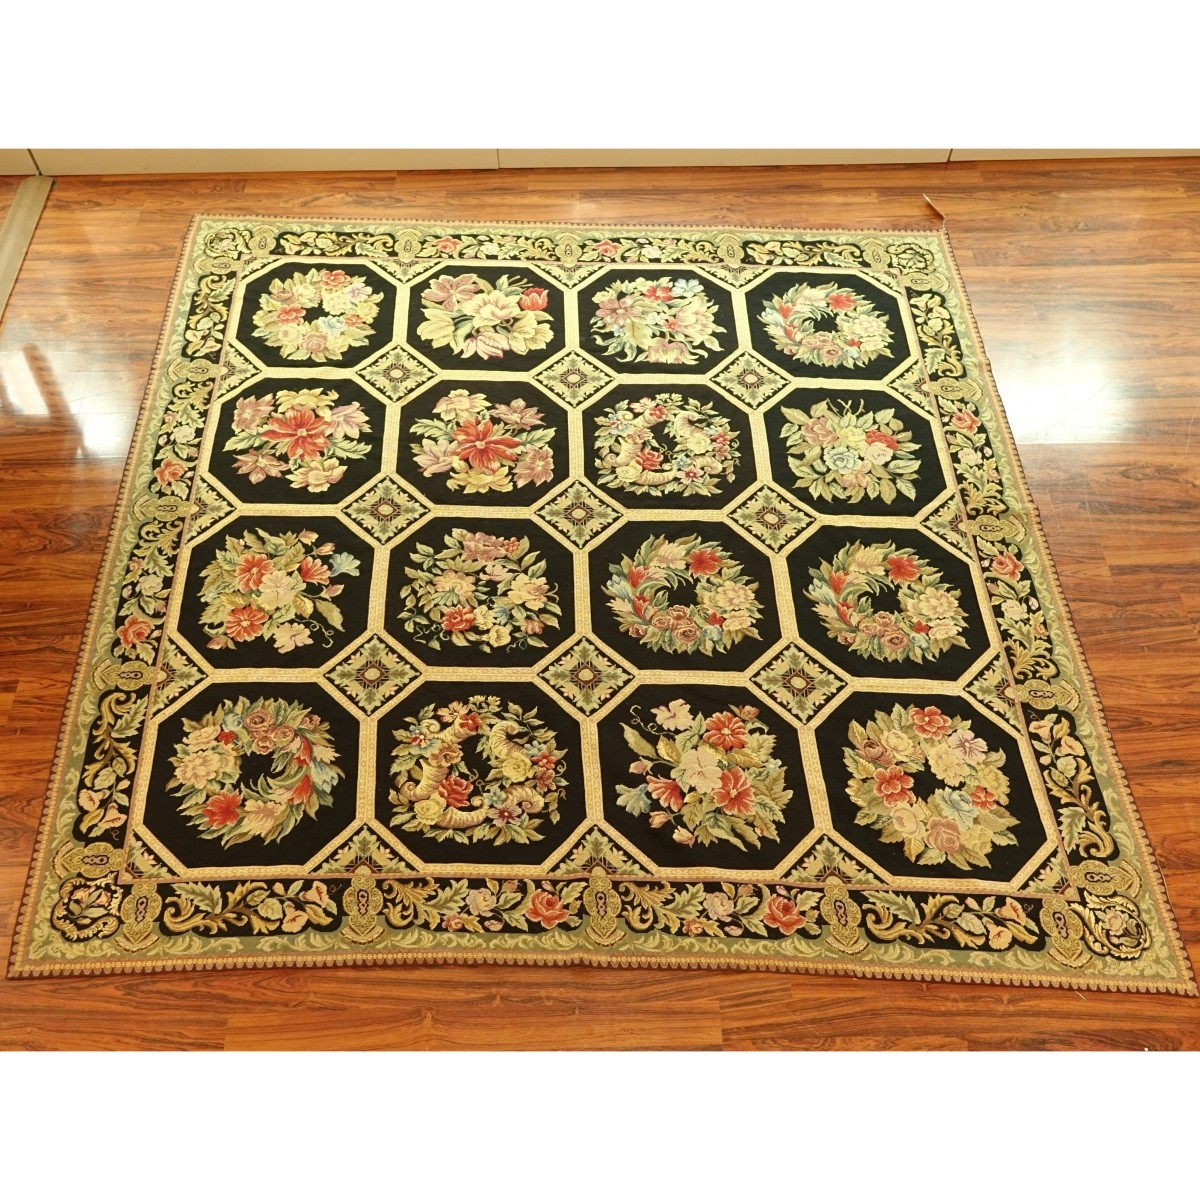 Large Antique Italian Hand Woven Rug